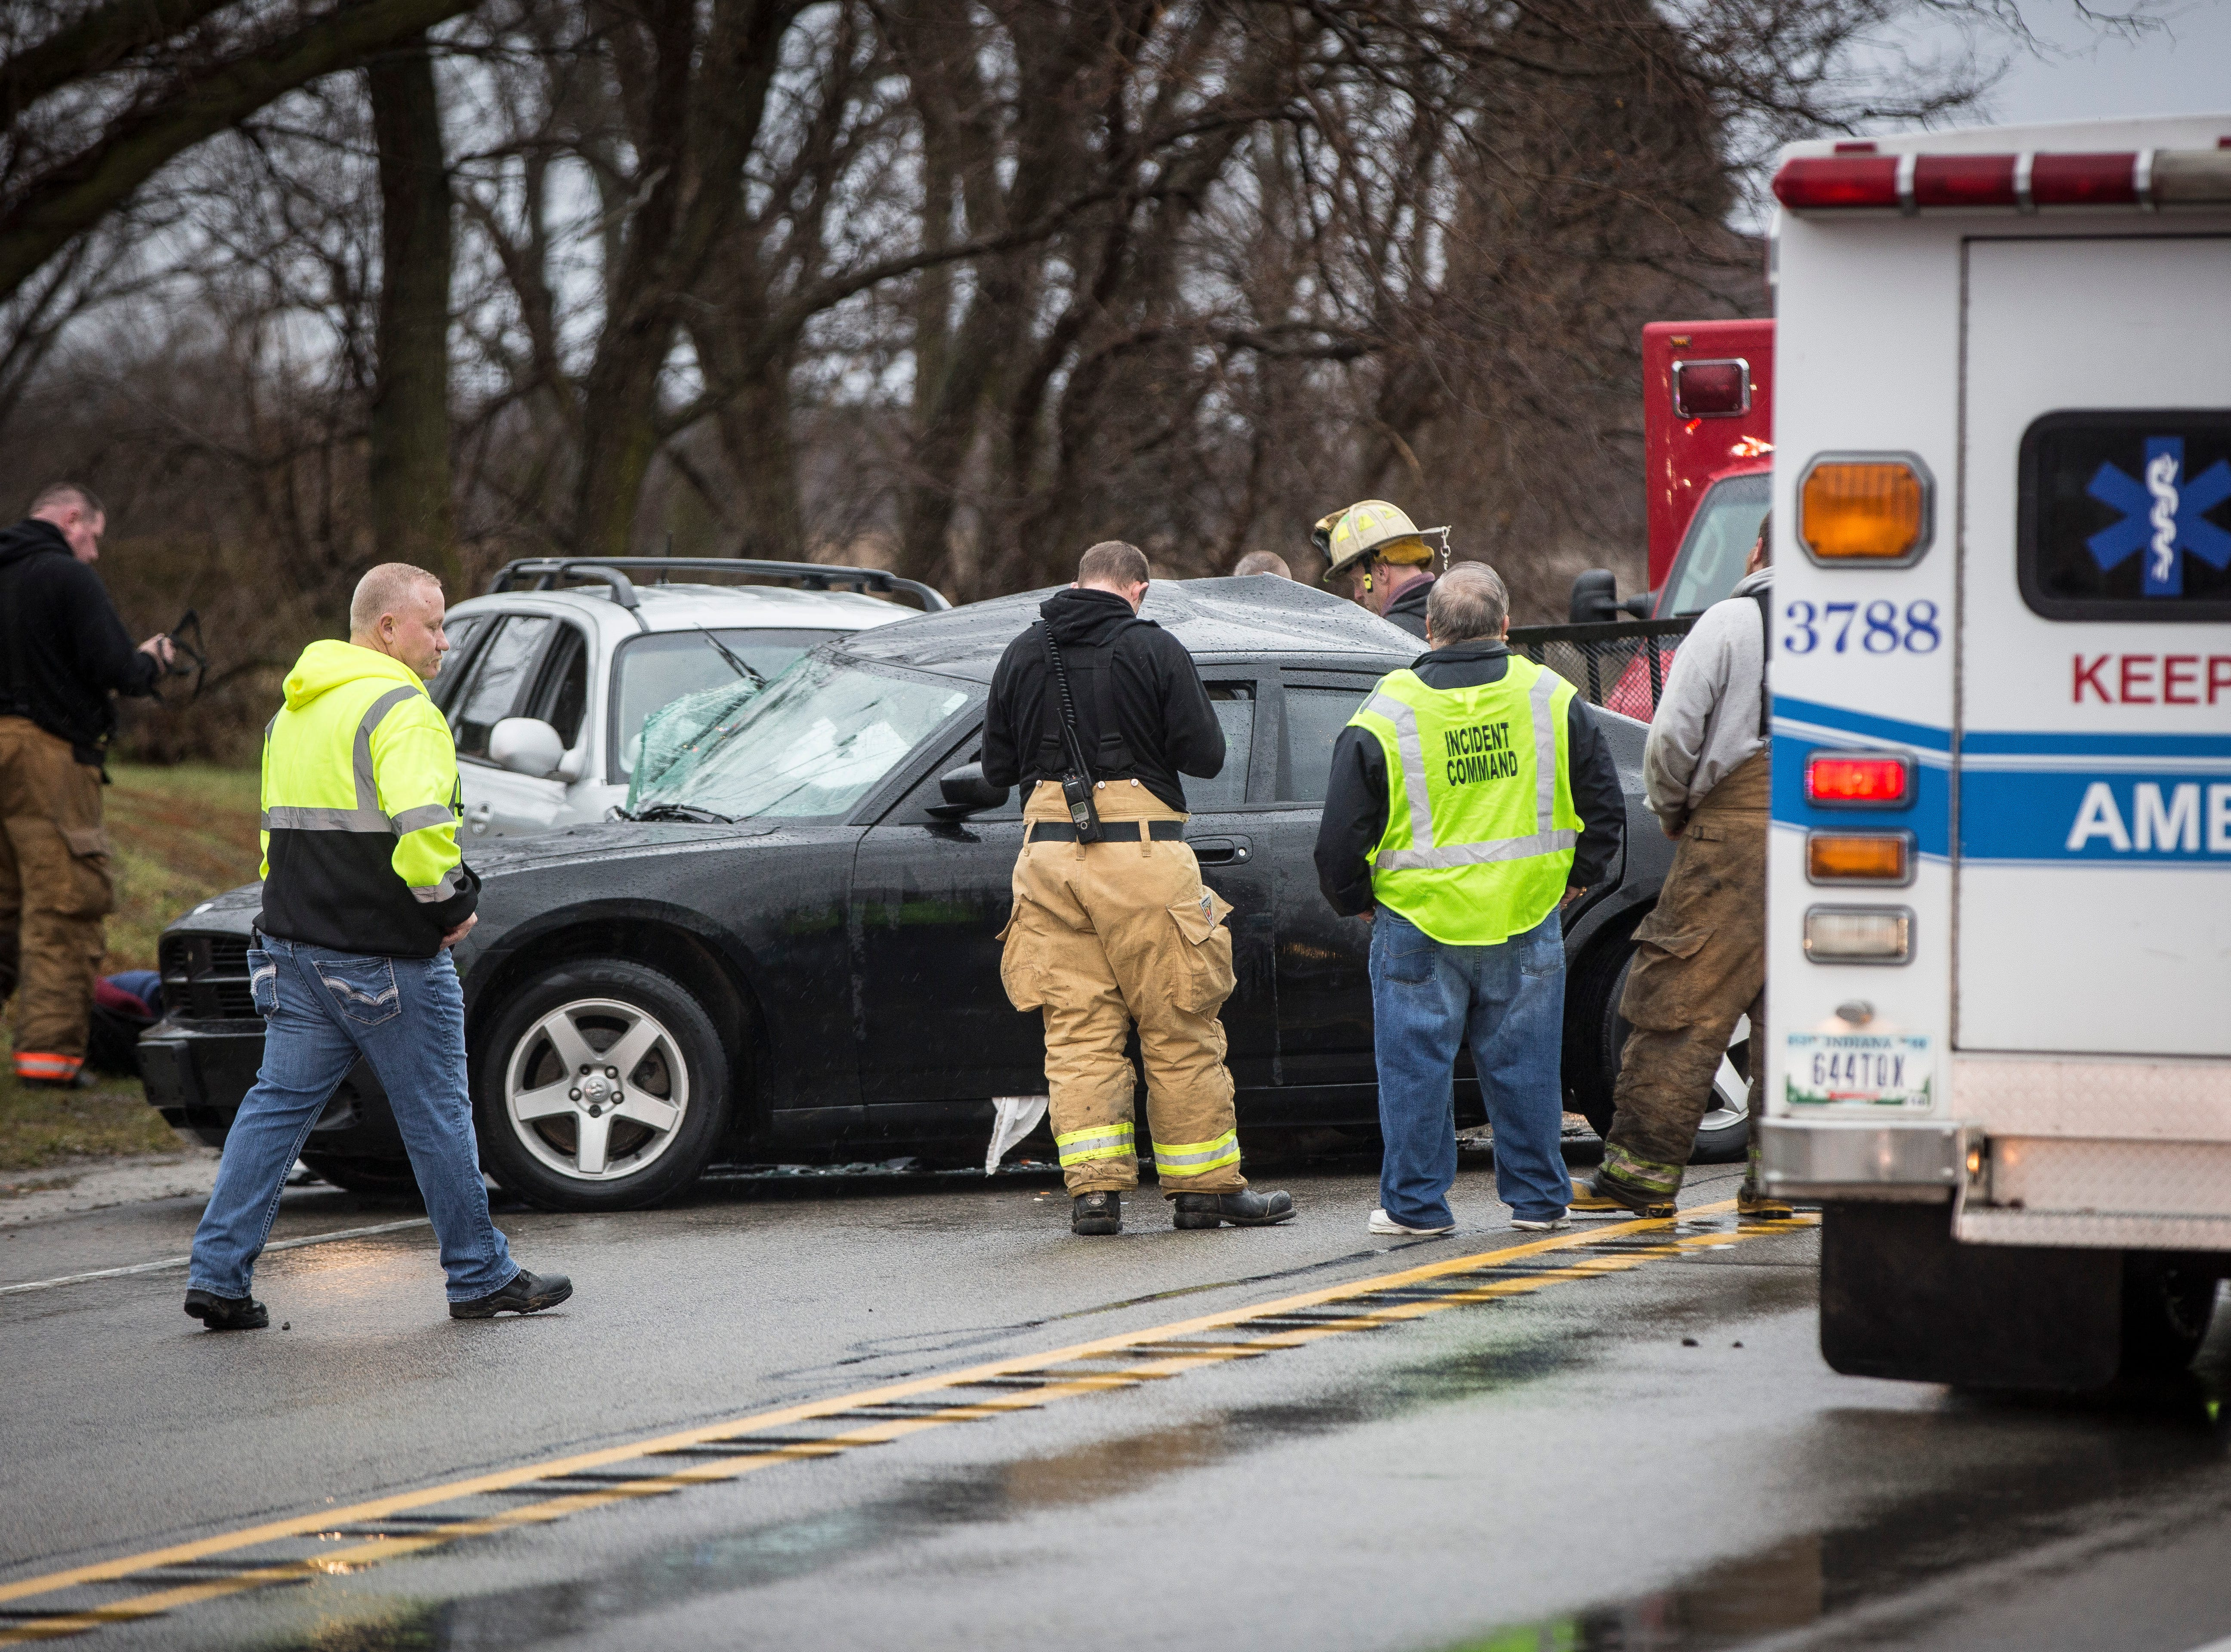 Emergency officials responded to a deadly crash on U.S. 35 Monday afternoon near Delaware County Road 500-E. One person was killed in the accident with three others injured.